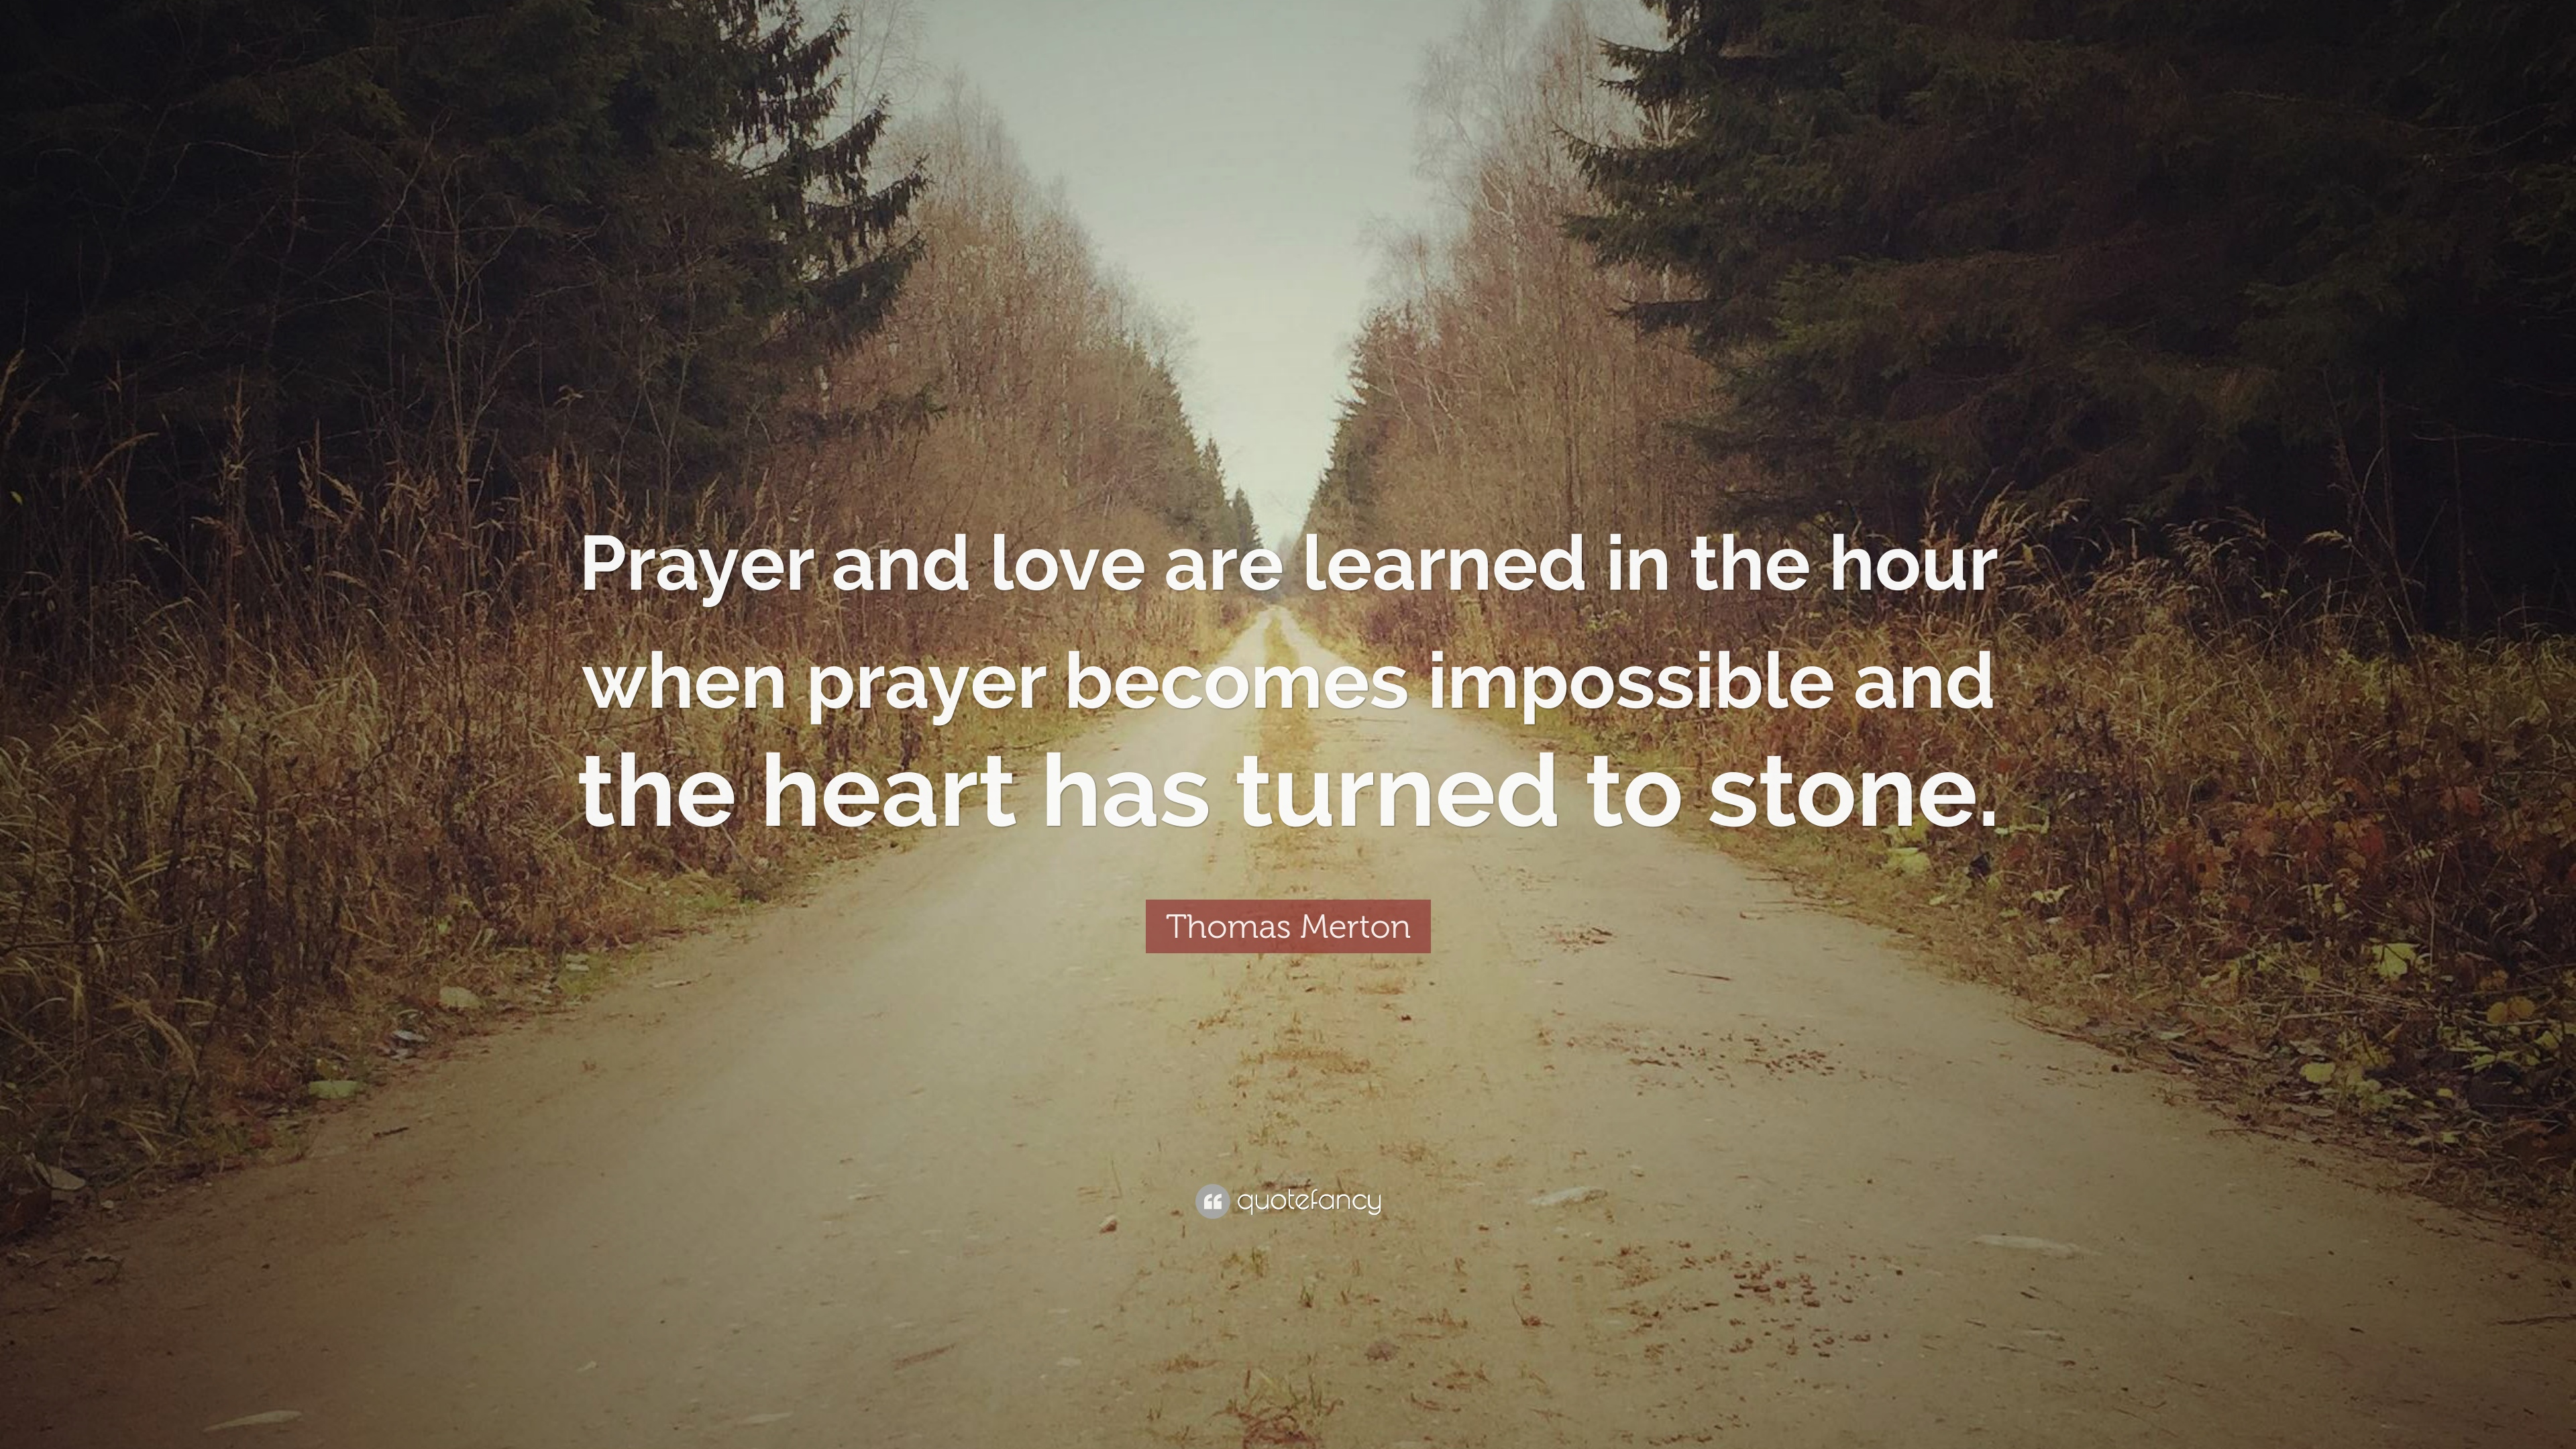 Thomas merton quote prayer and love are learned in the hour when thomas merton quote prayer and love are learned in the hour when prayer becomes thecheapjerseys Images